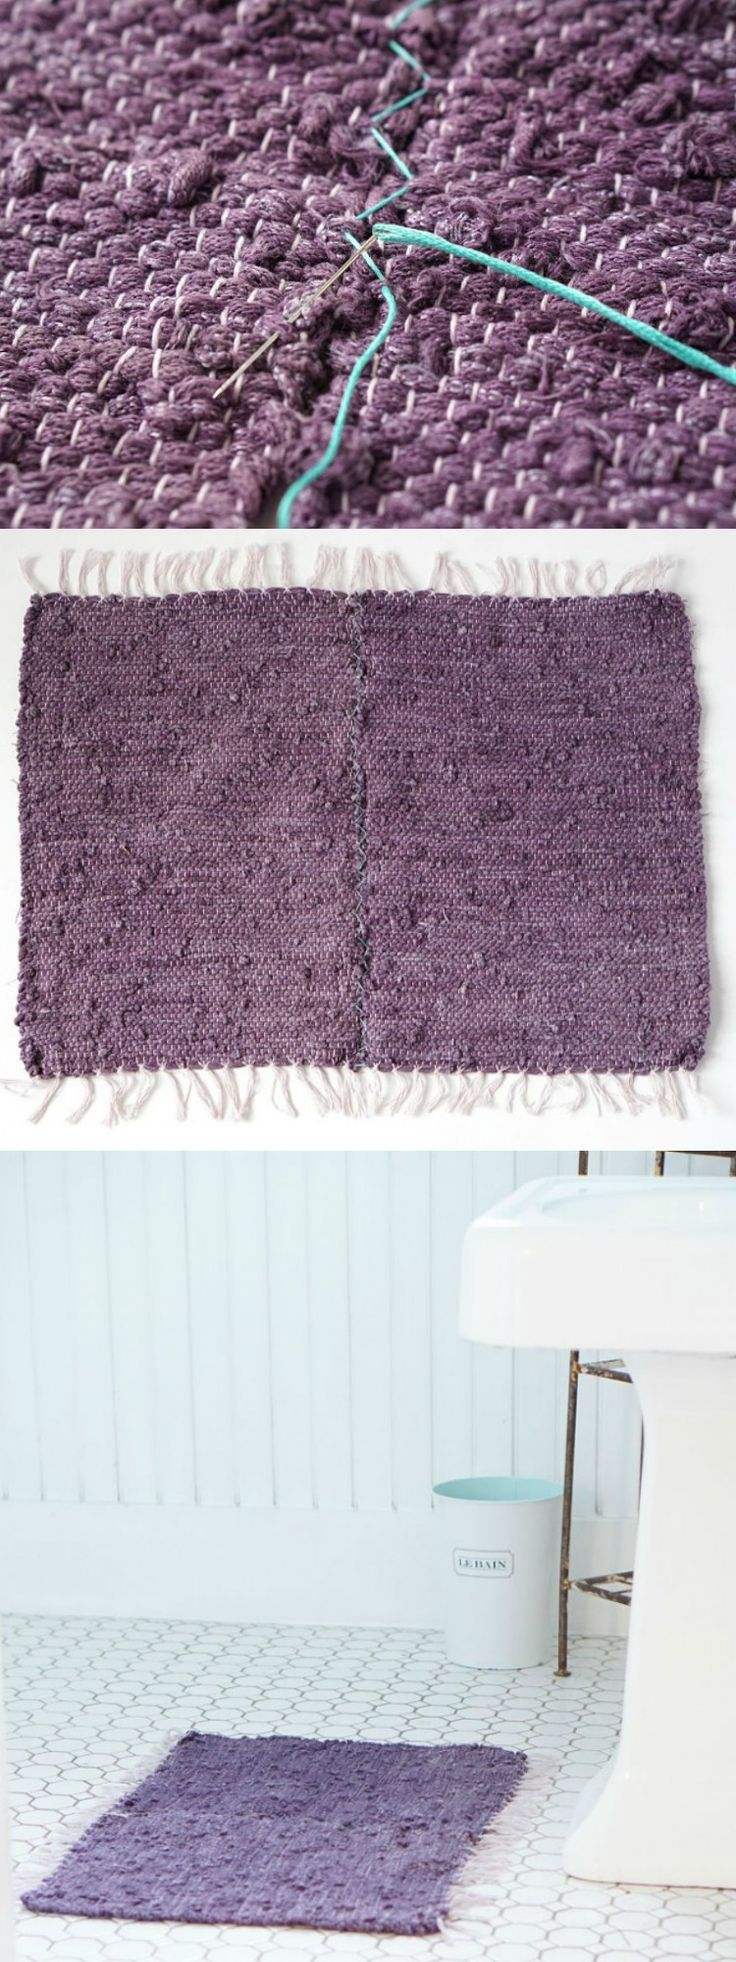 best 25+ diy bath mats ideas on pinterest | bath mat, bath mats